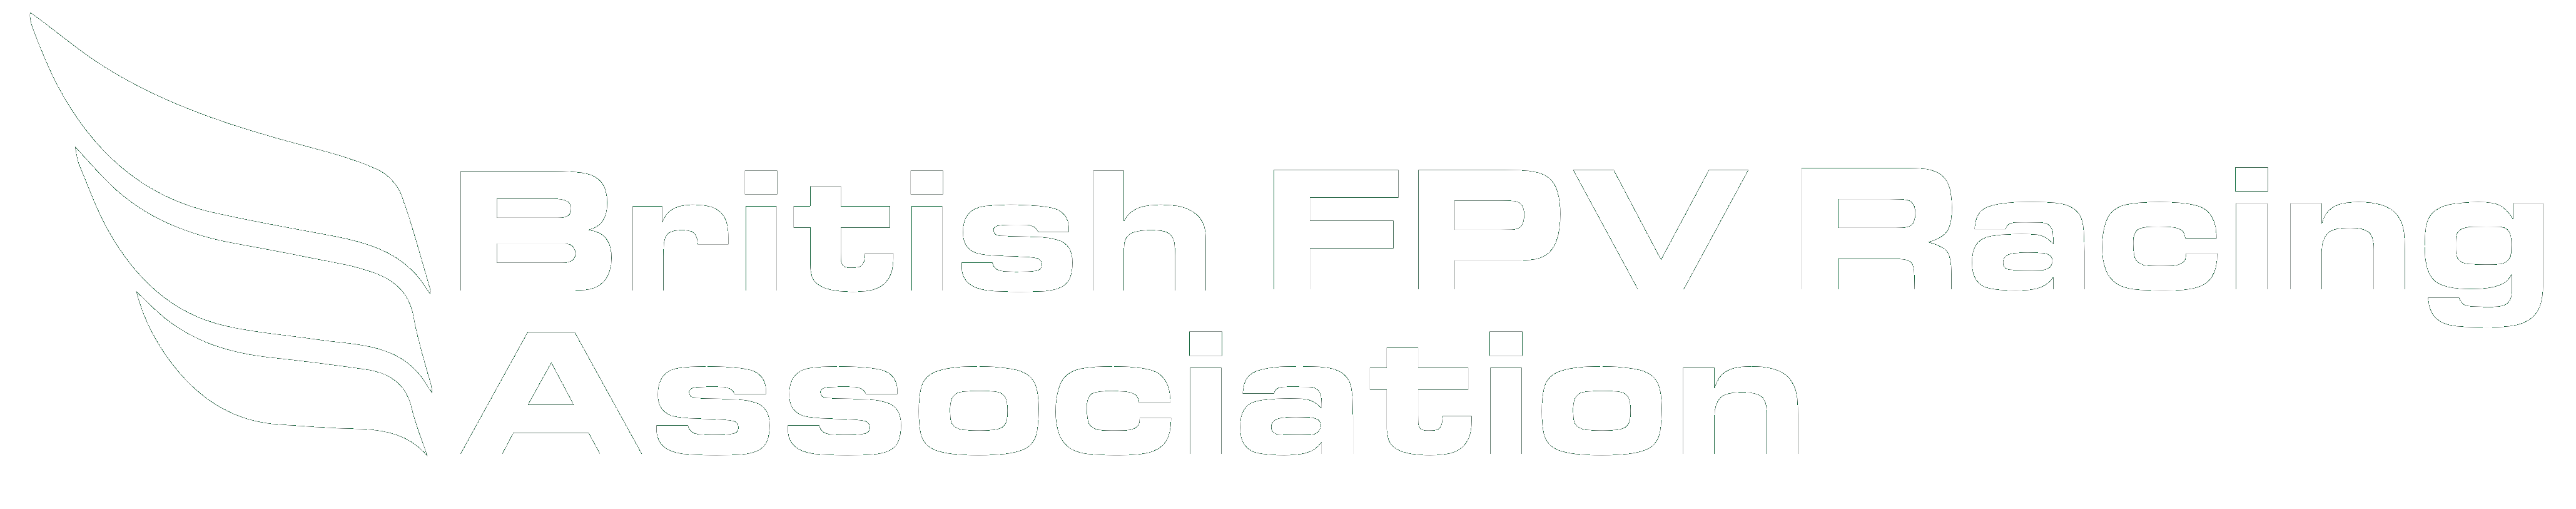 British FPV Racing Association Forum